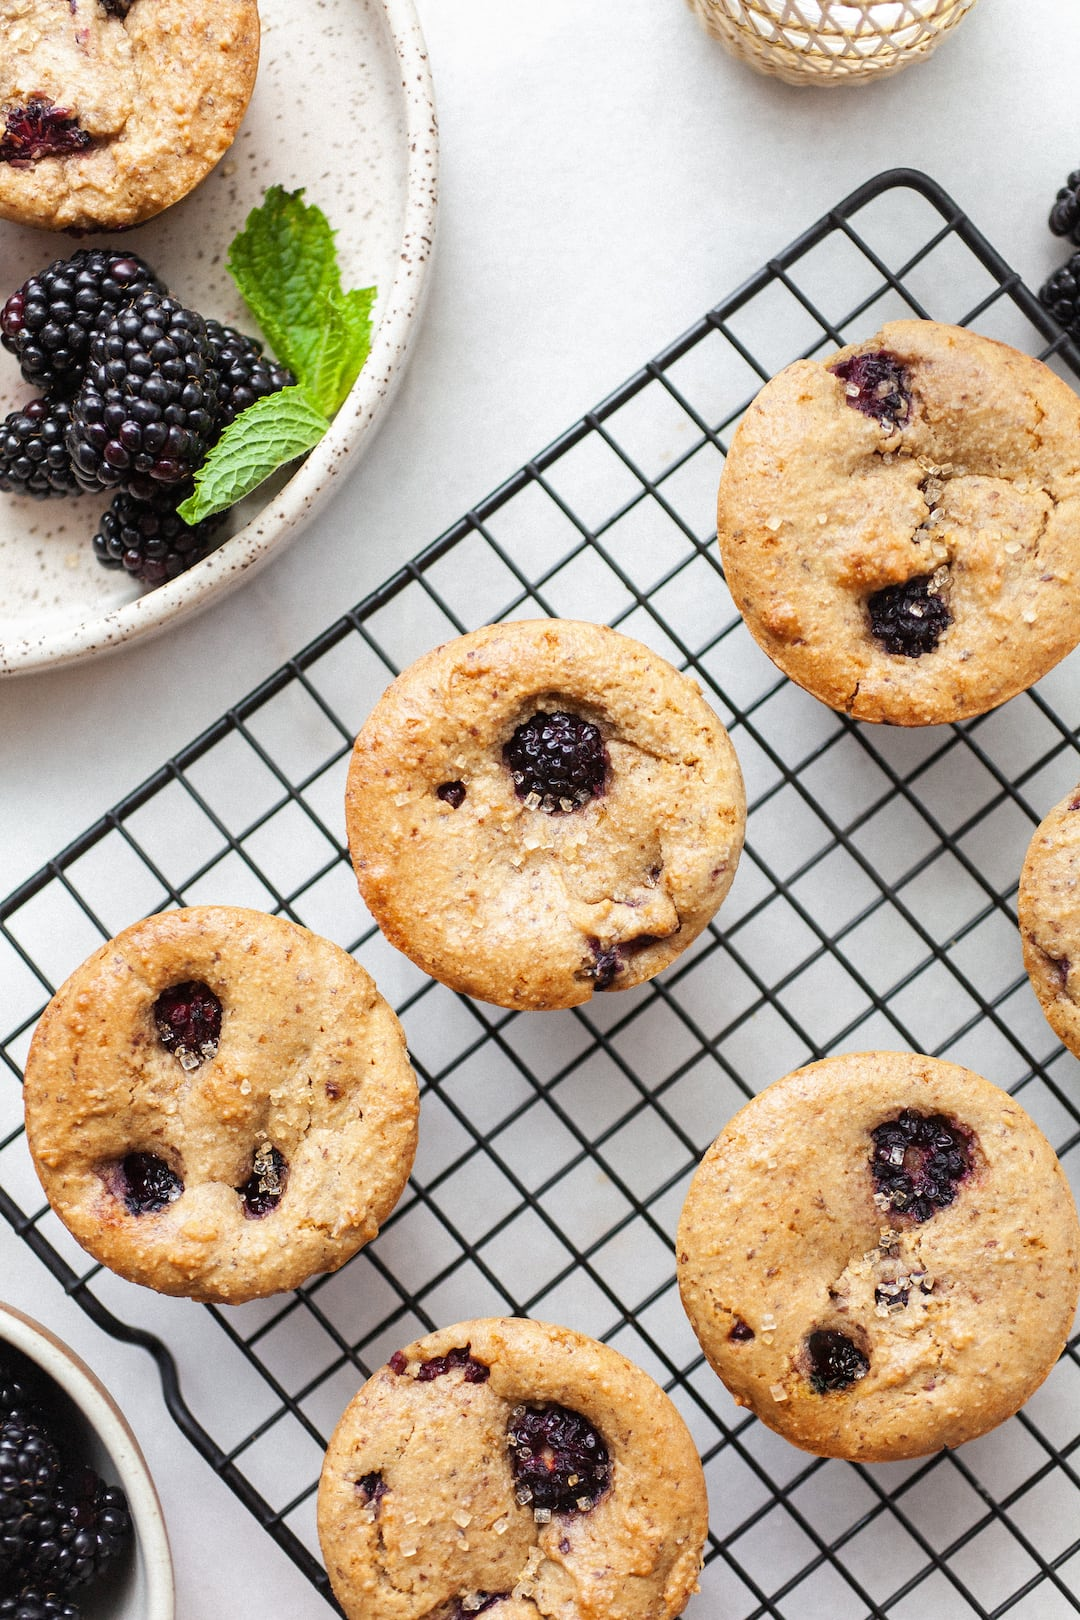 Cooling rack topped with Vegan Blackberry Muffins